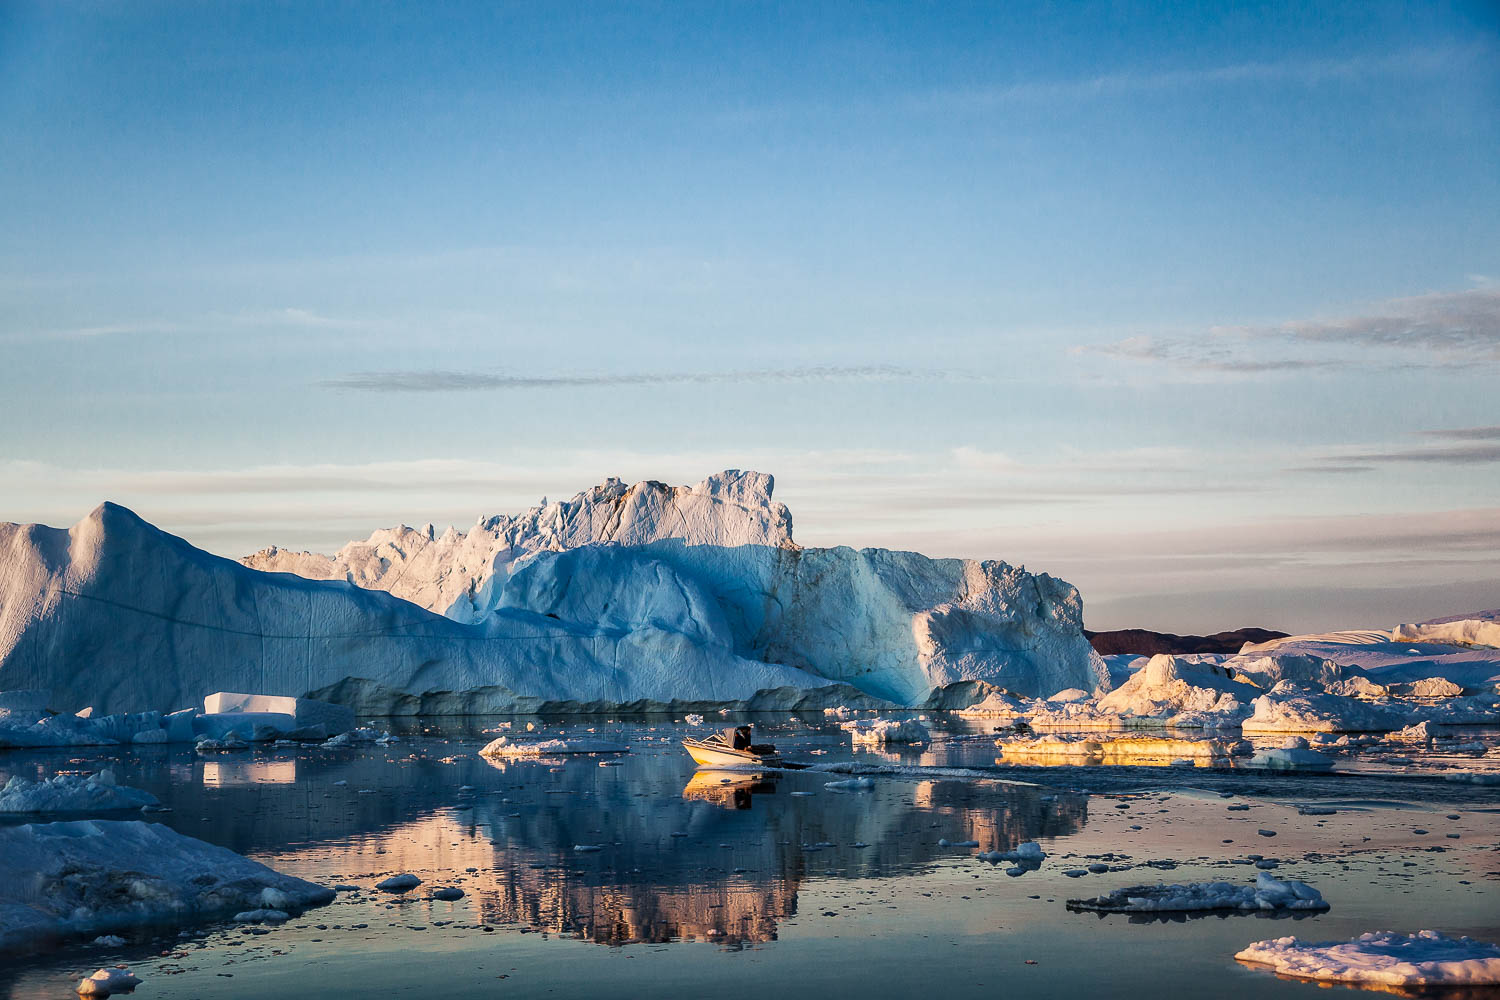 A small fishing boat amongst huge icebergs on the waters of the Ilulissat Icefjord near Ilulissat, Greenland.